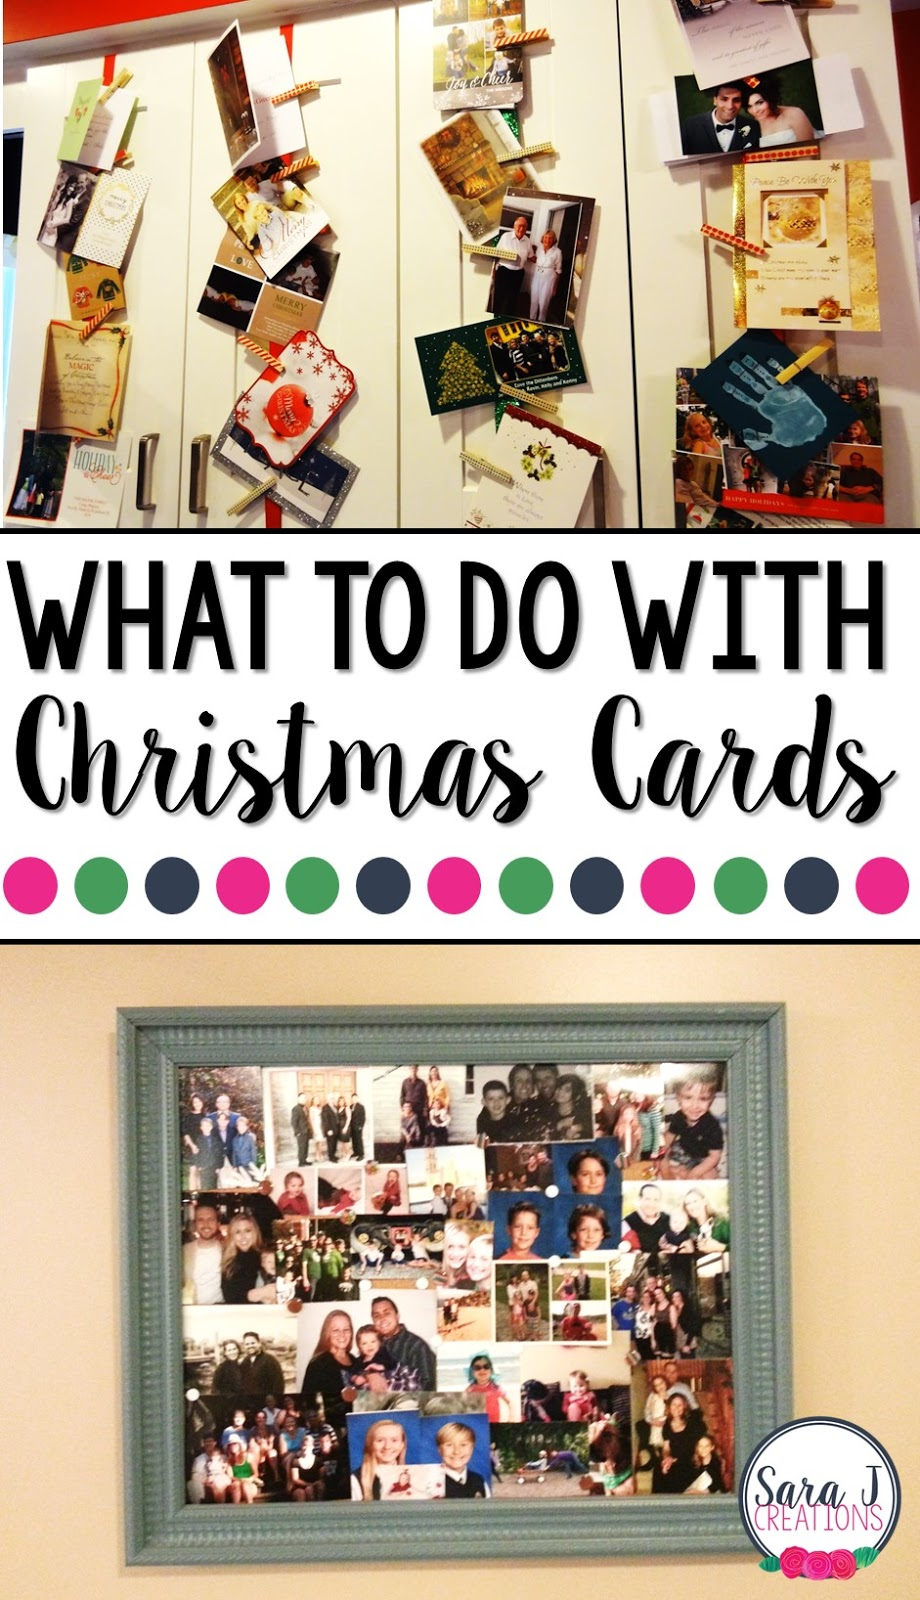 DIY ideas for what to do with your Christmas cards after the holiday has come and gone